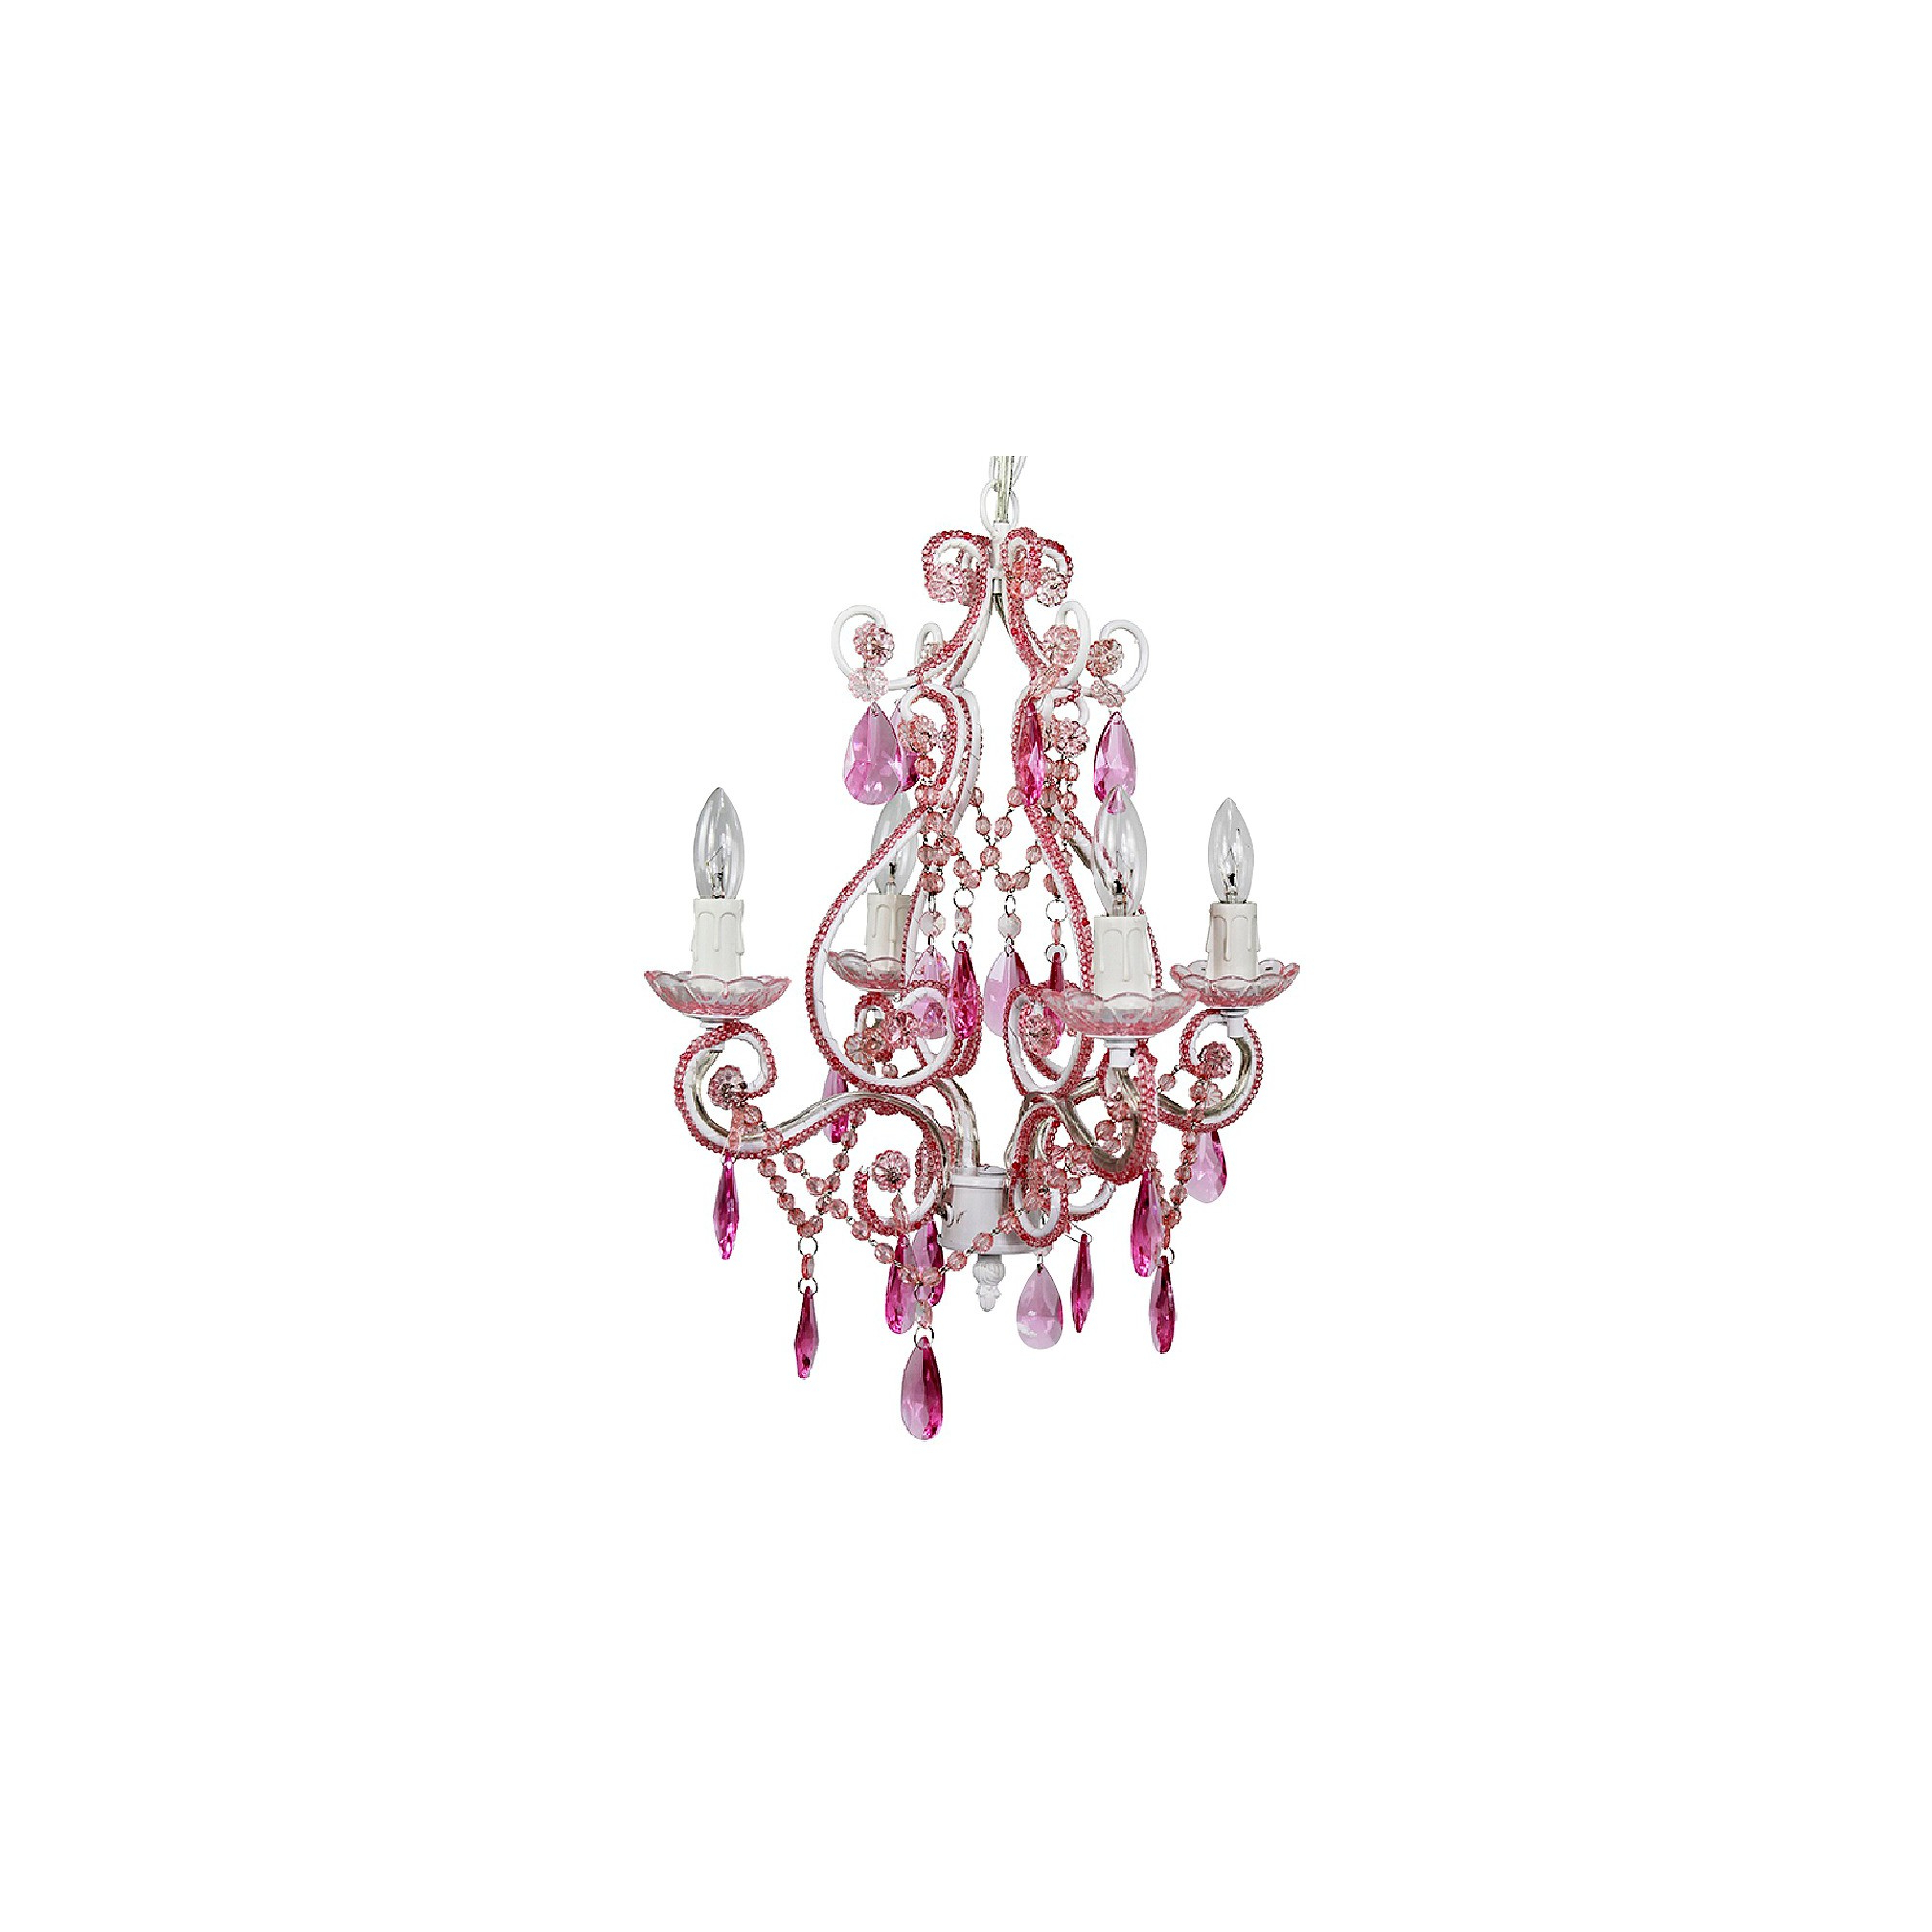 2020 Three Posts Aldora 4 Light Candle Style Chandelier In 2019 With Regard To Aldora 4 Light Candle Style Chandeliers (Gallery 20 of 20)